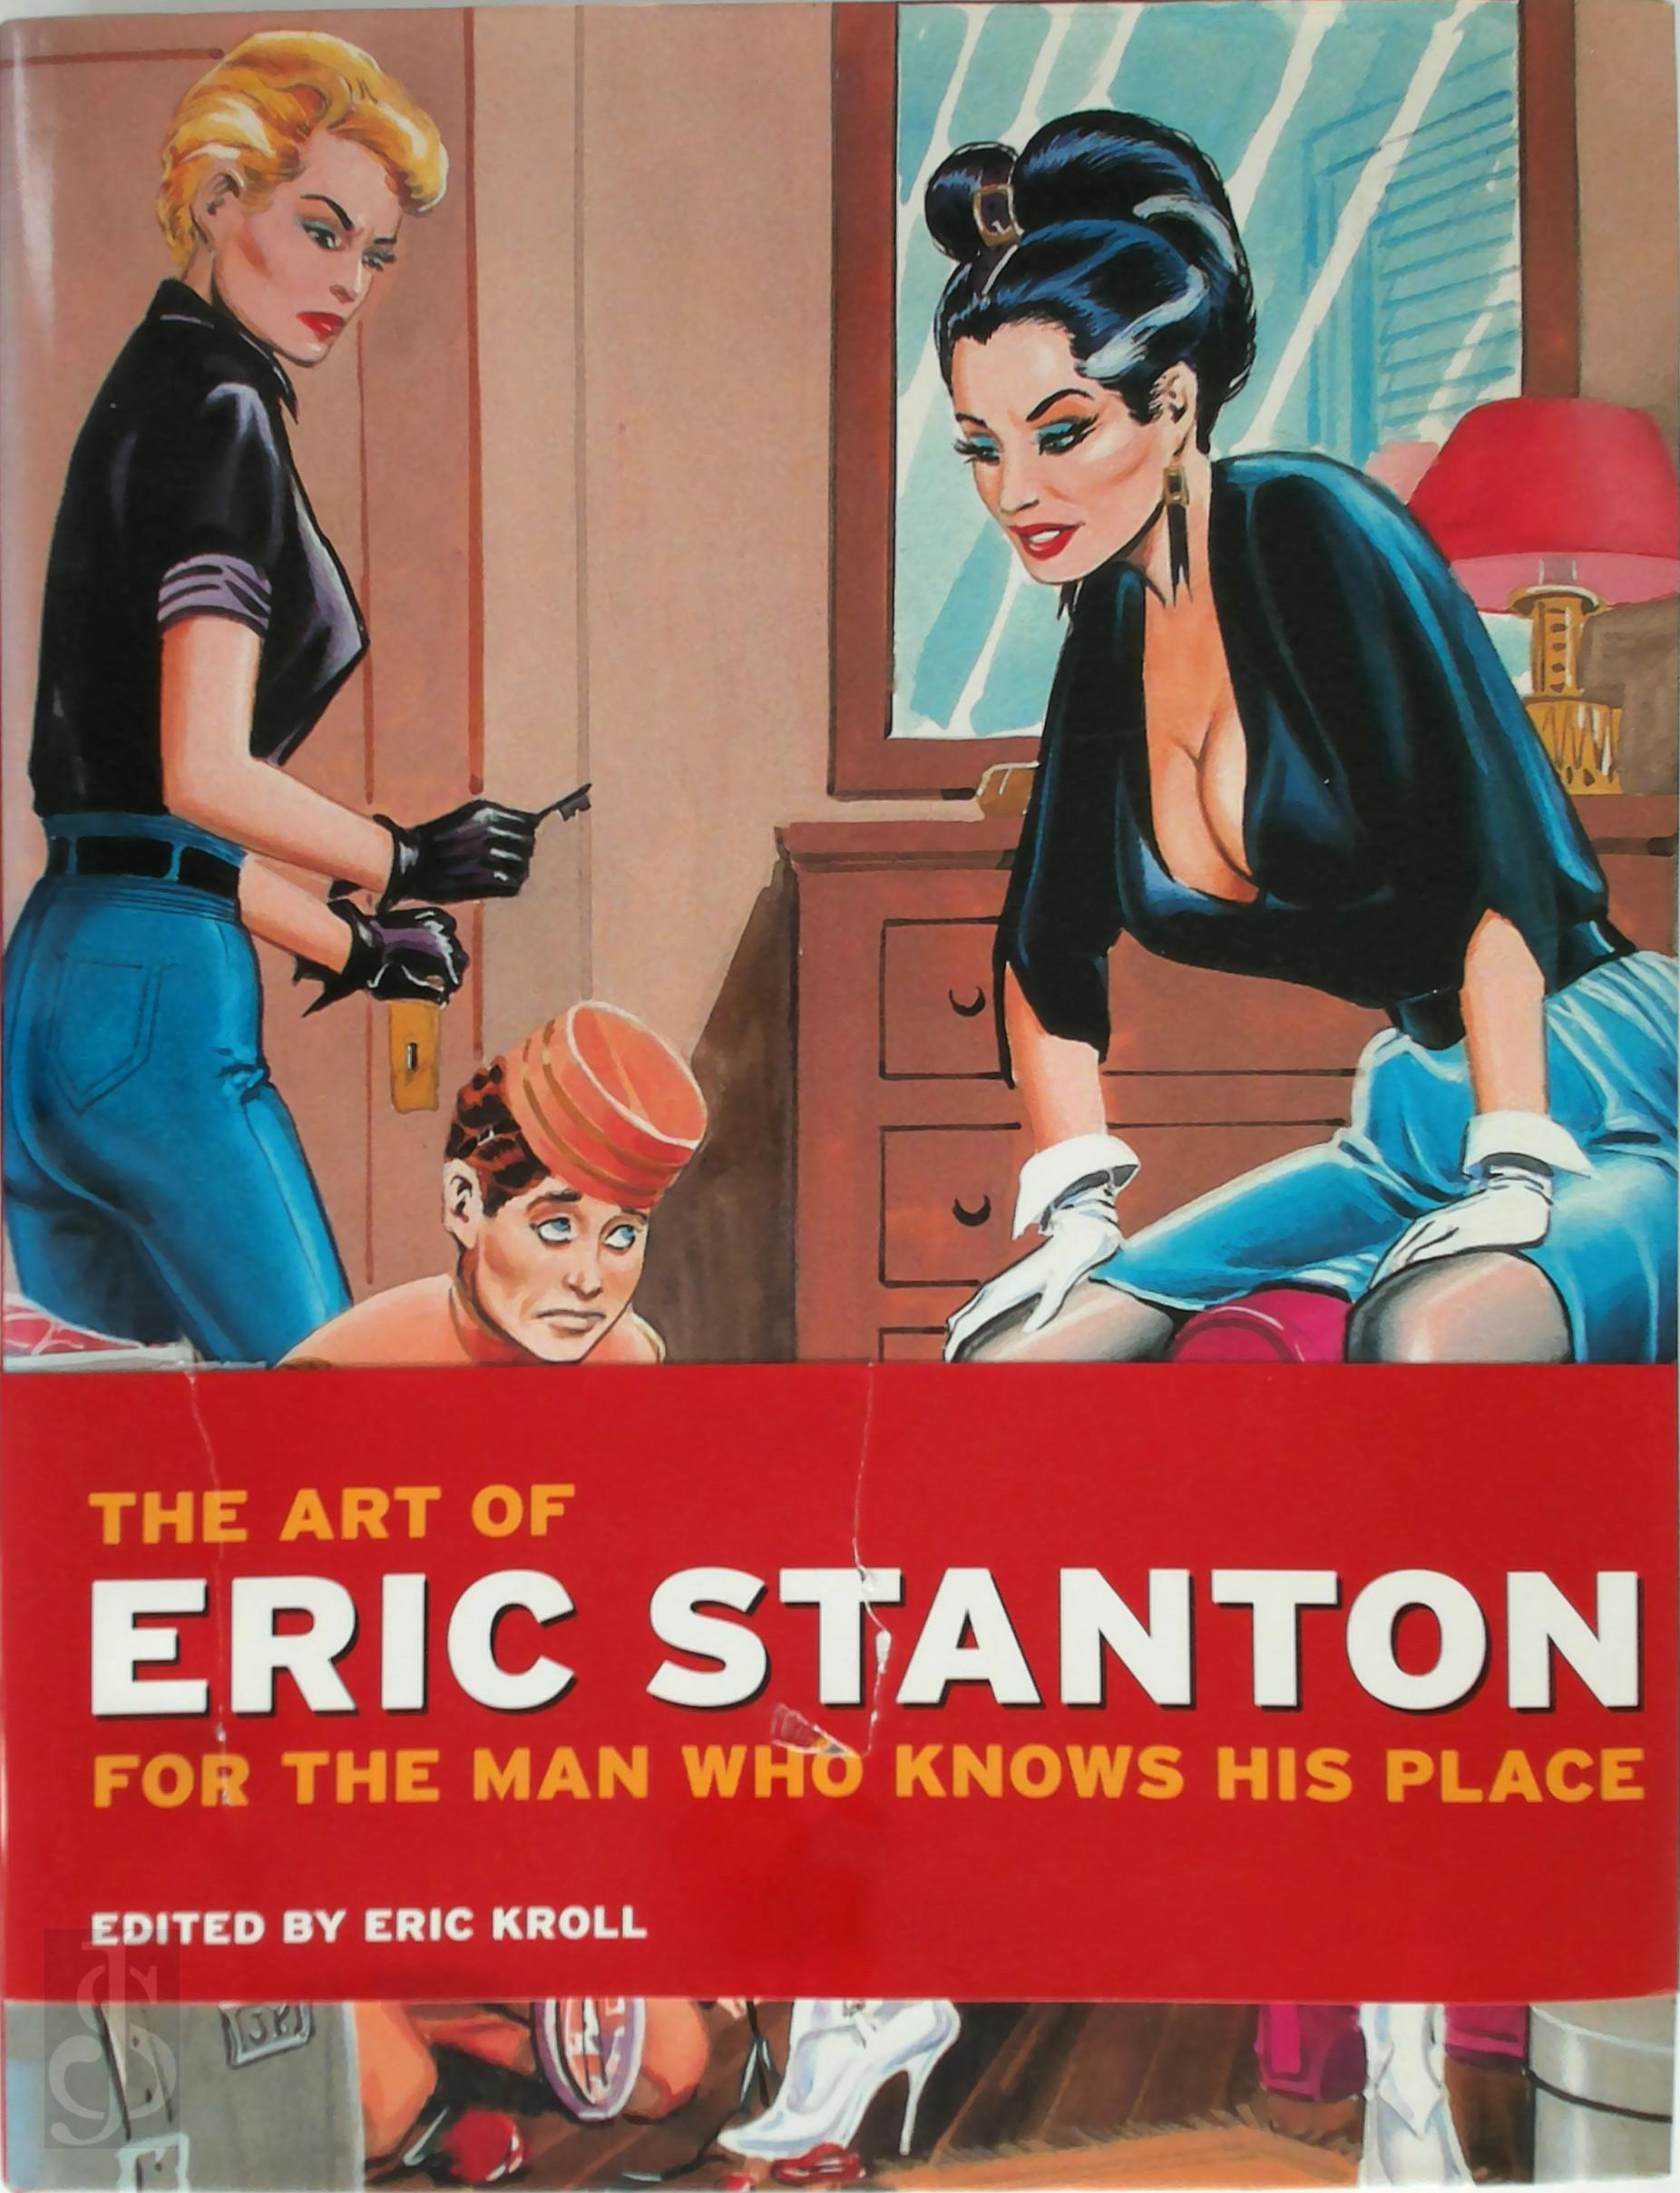 Eric Stanton, Eric Kroll - The Art of Eric Stanton For the Man who Knows His Place